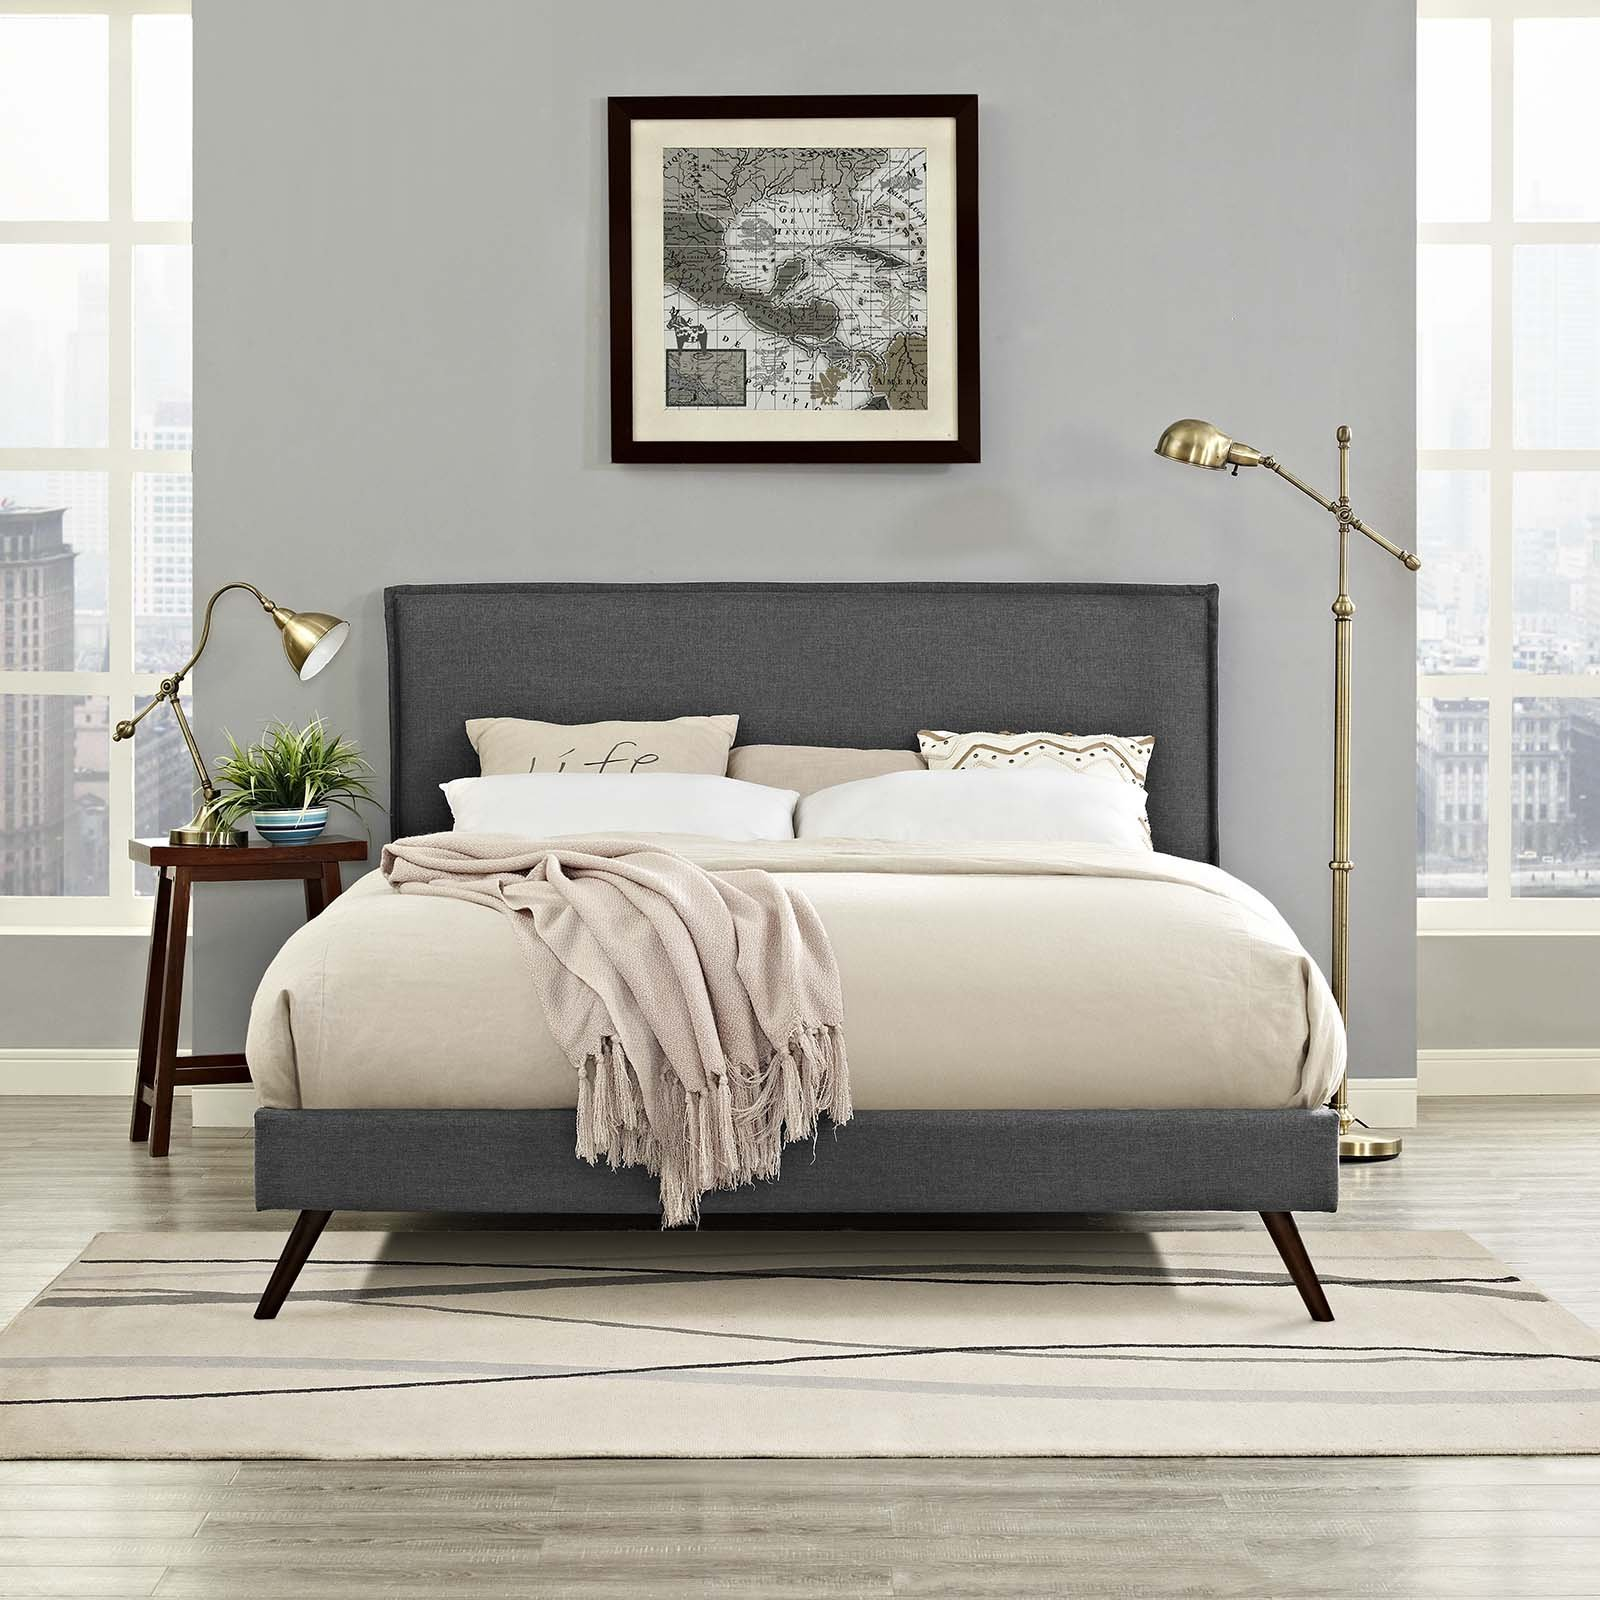 Modway Amaris Upholstered Queen Platform Bed Frame With Round Splayed Legs in Gray by Modway